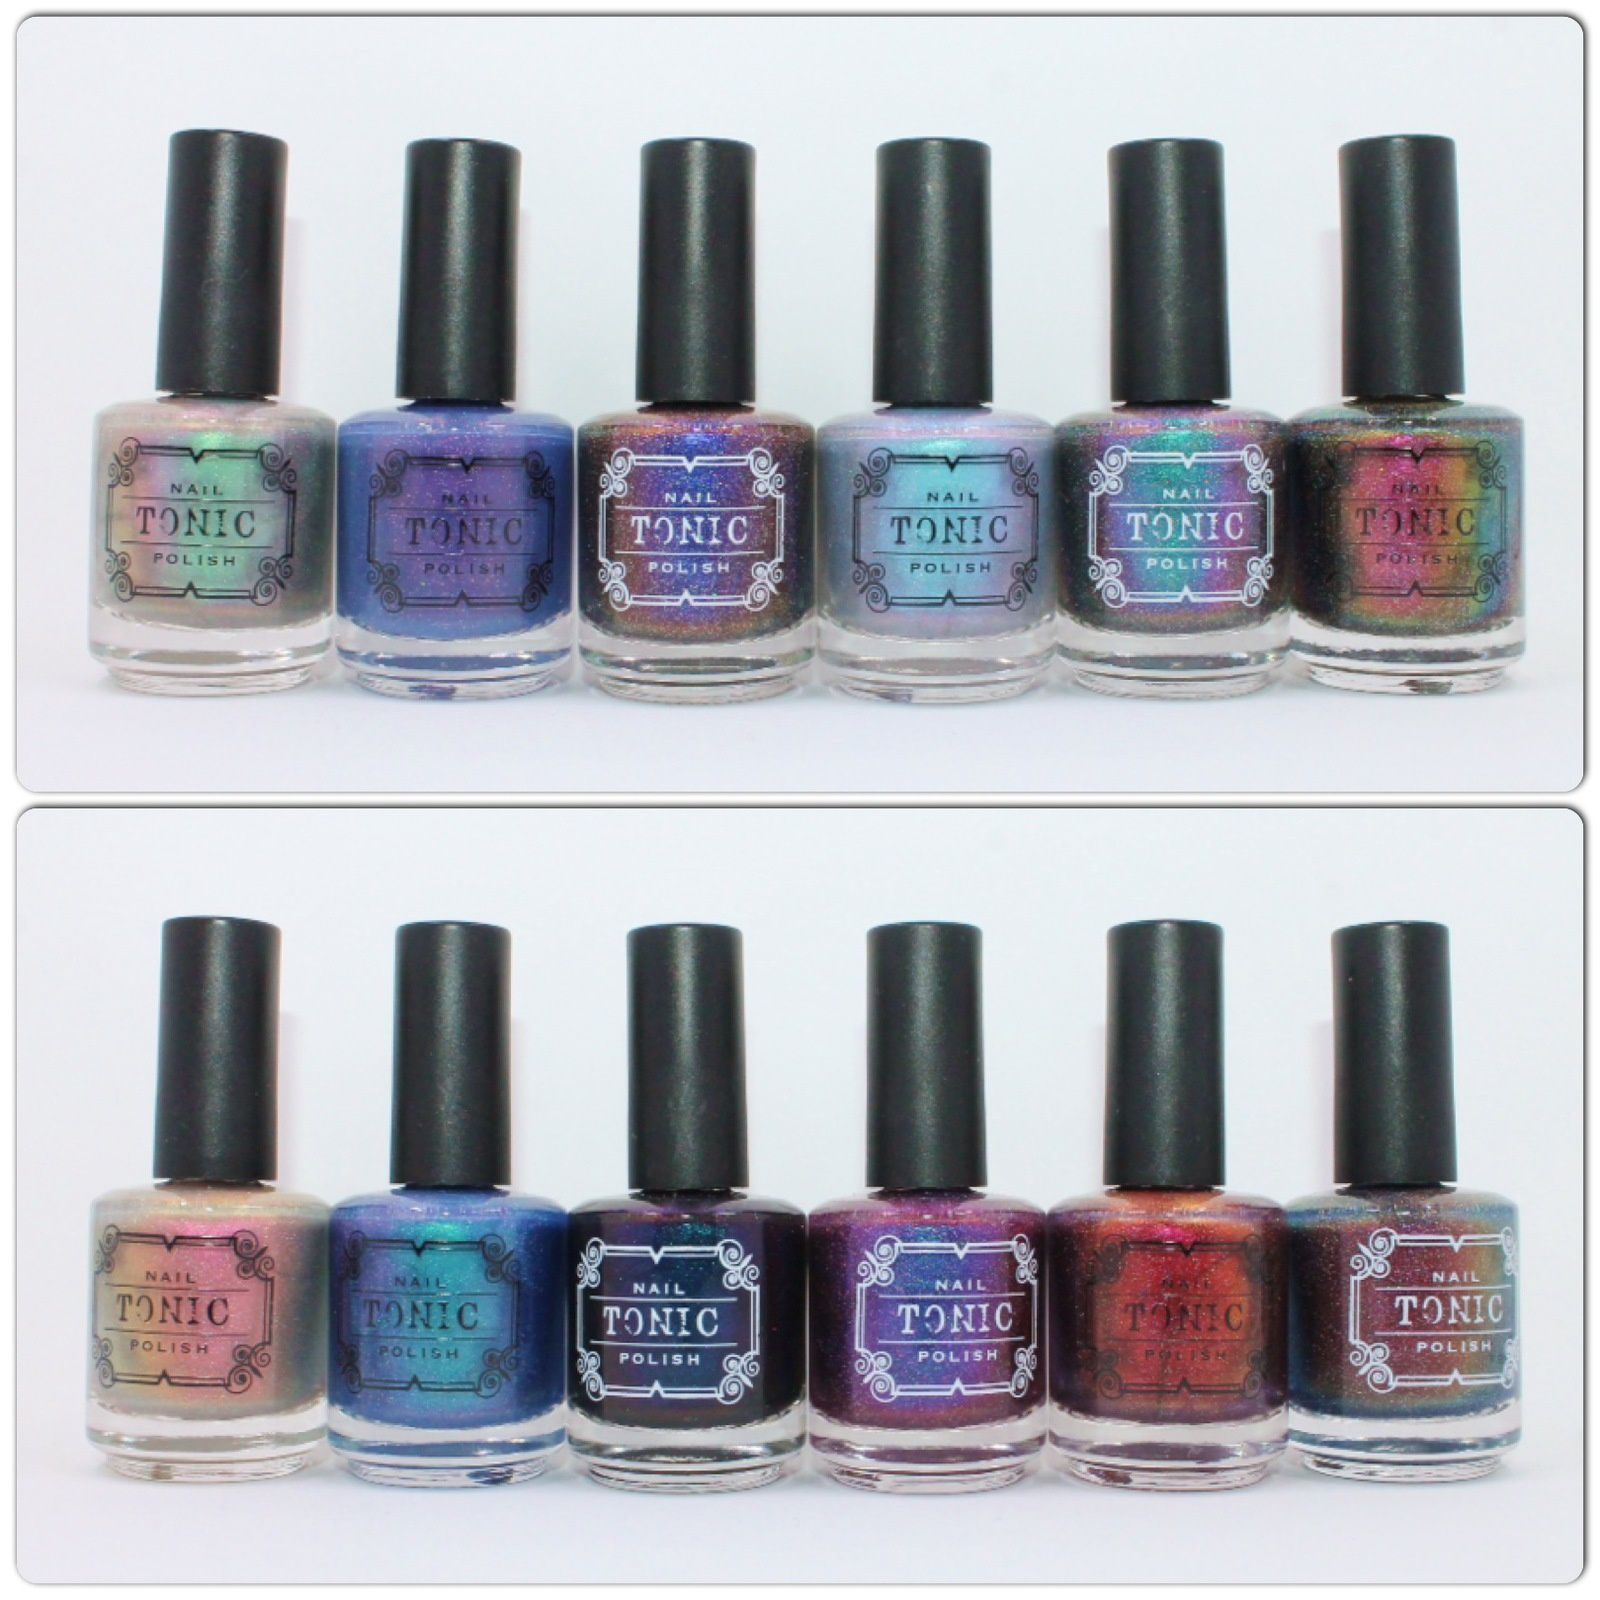 Tonic Polish Greenglow, Stars at Twilight, Magnetic Midnight, Luminescent, Dragon Tears, Mermais Scales, Incandescent, Dorothy, Sophia, Blanche, Rose, Alchemy.